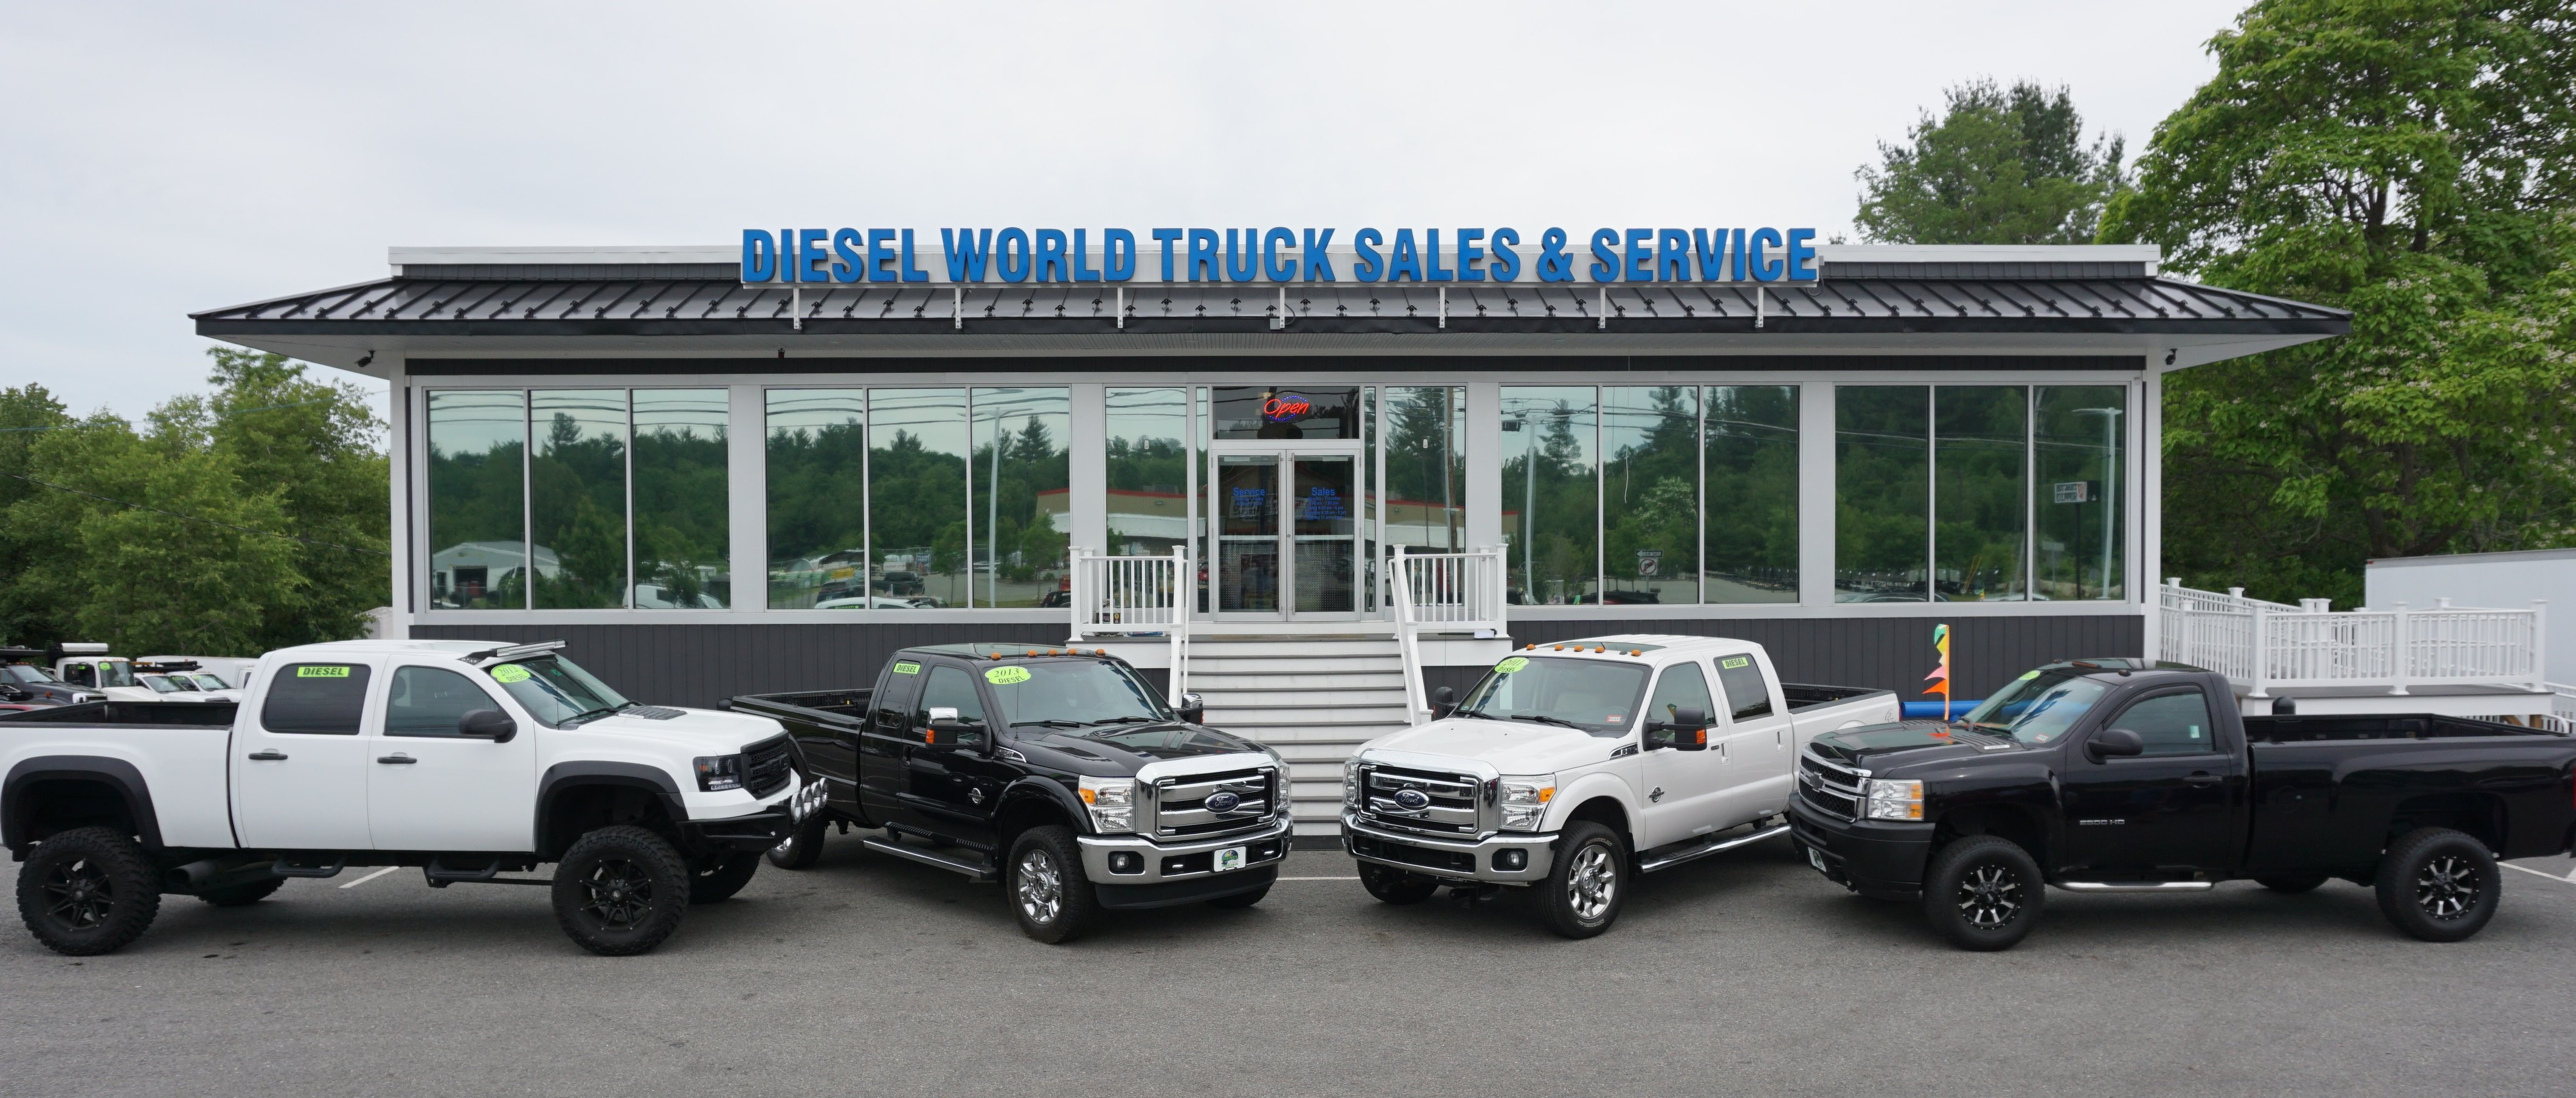 Used Diesel Pickup Trucks For Sale >> Diesel World Truck Sales With 140 Diesel Gas Used Trucks